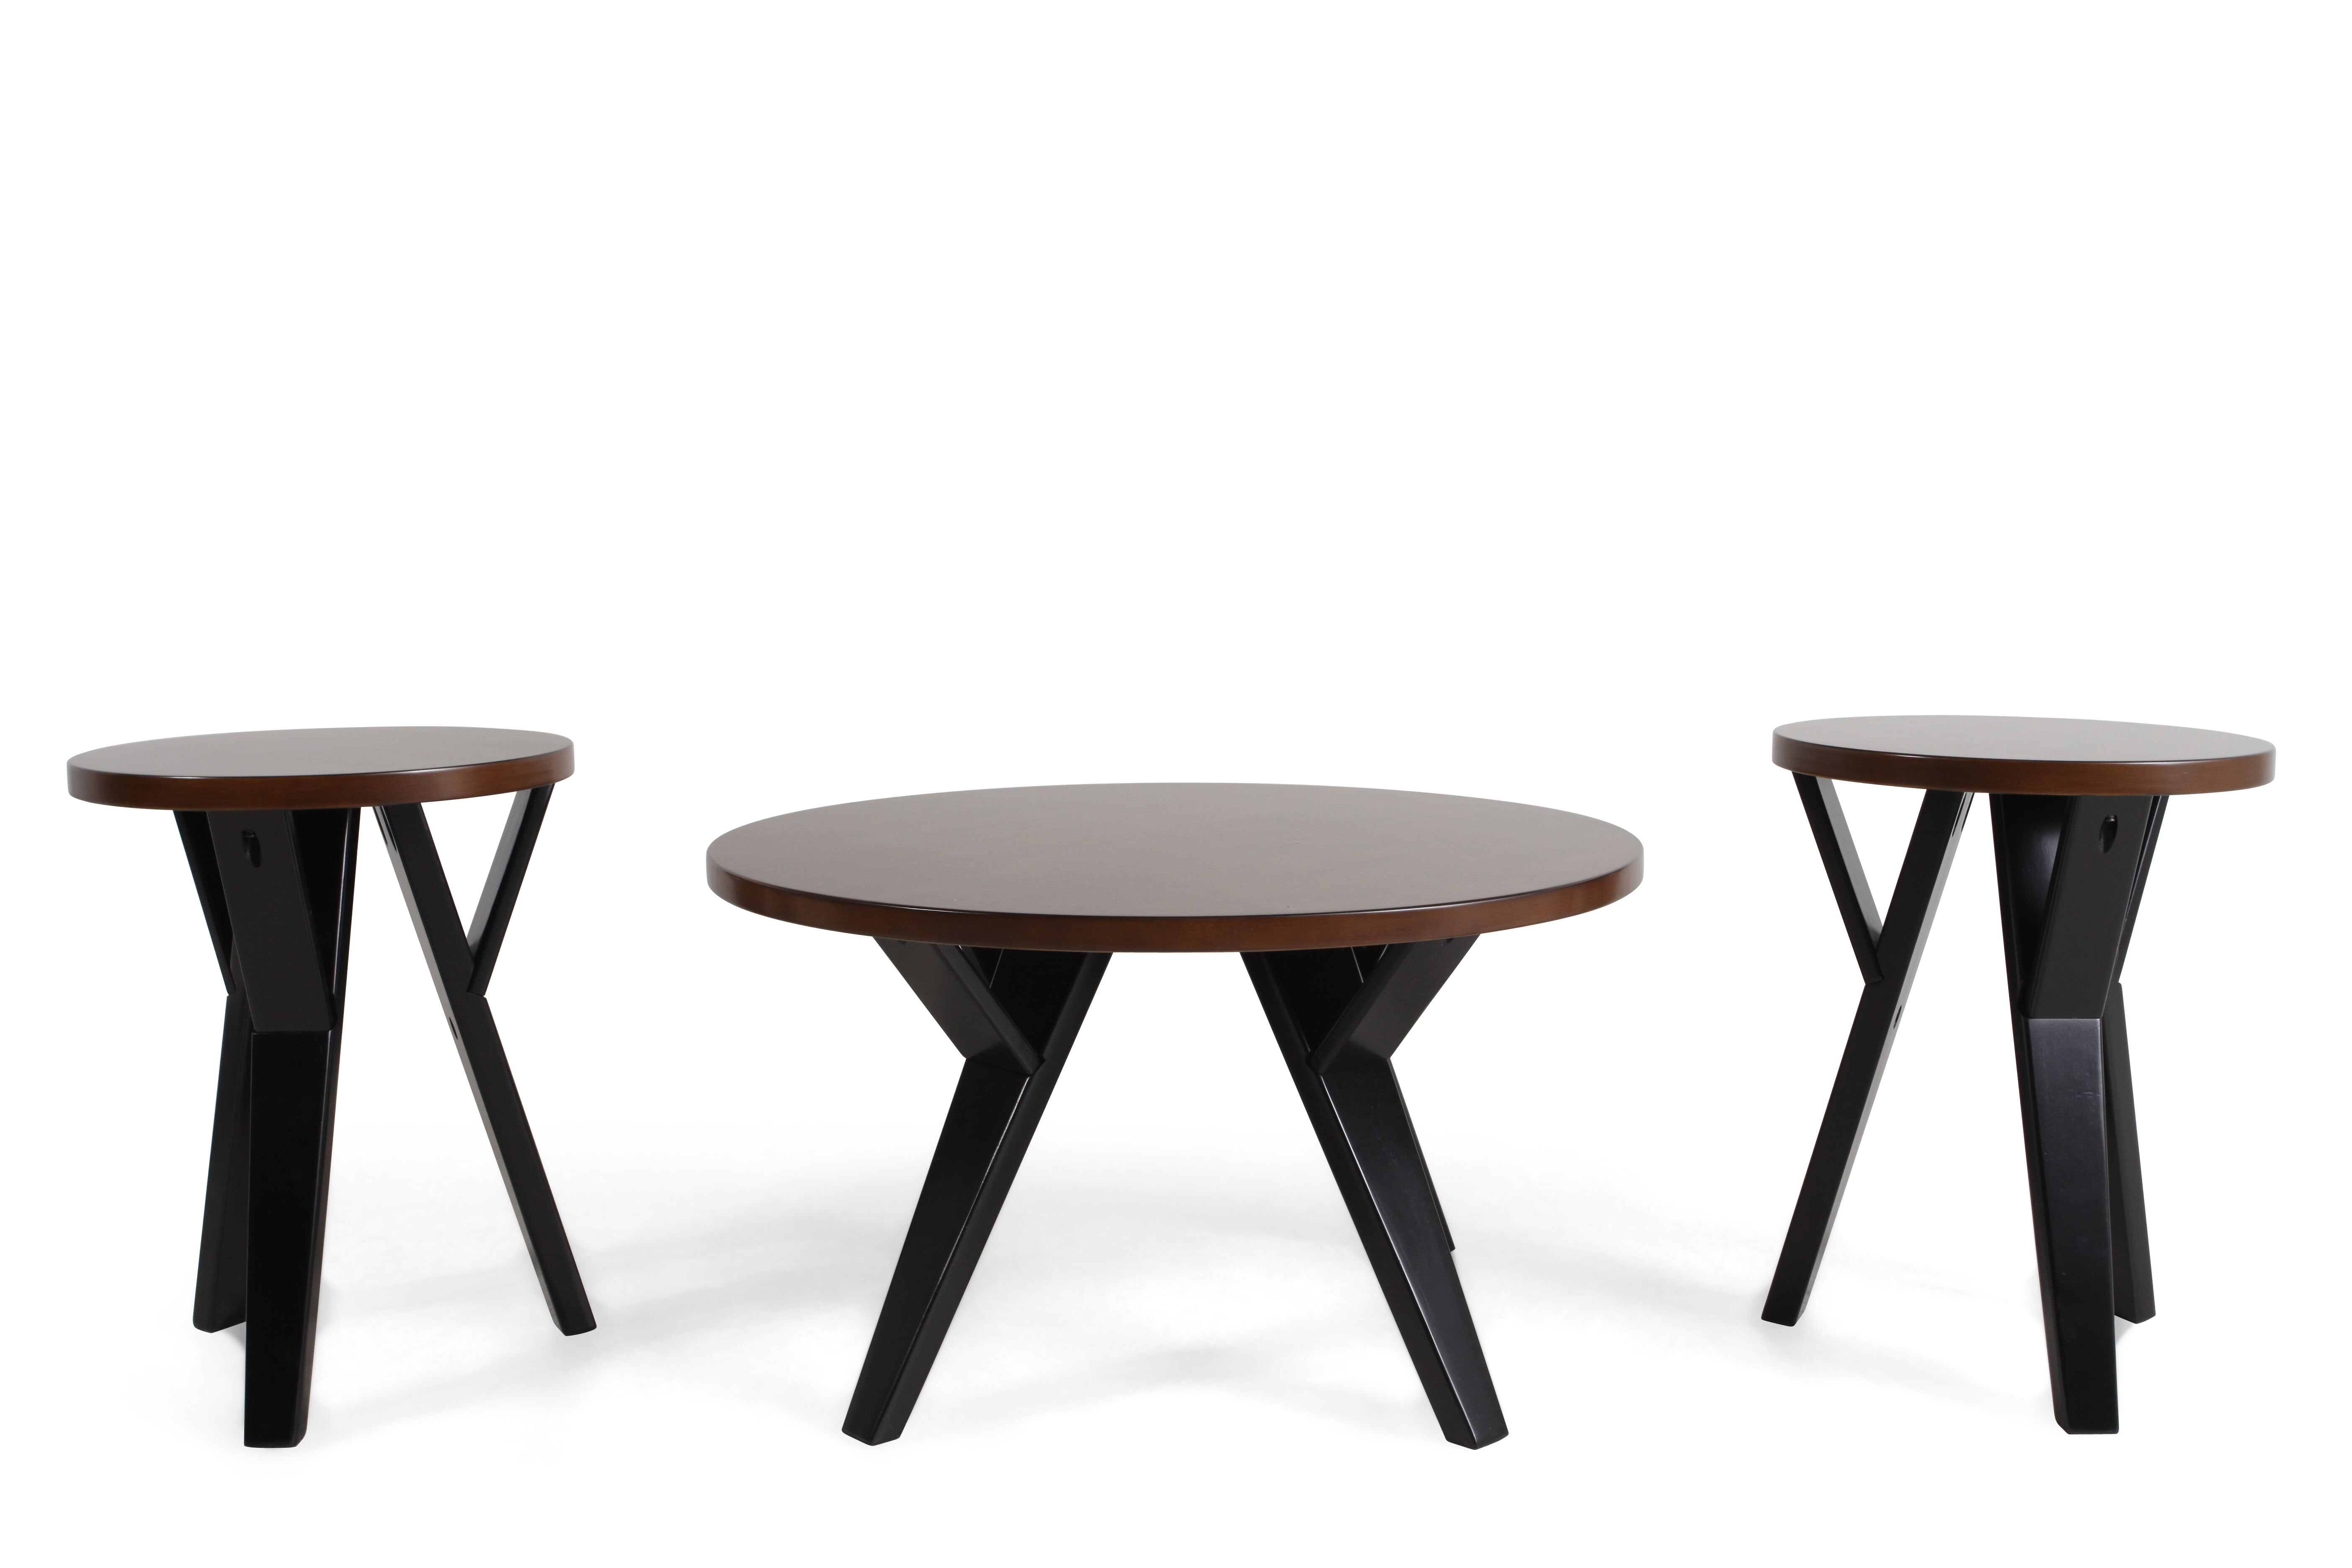 Images Three-Piece Round Contemporary Table Set in Brown Three-Piece Round Contemporary Table Set in Brown  sc 1 st  Mathis Brothers & Three-Piece Round Contemporary Table Set in Brown| Mathis Brothers ...